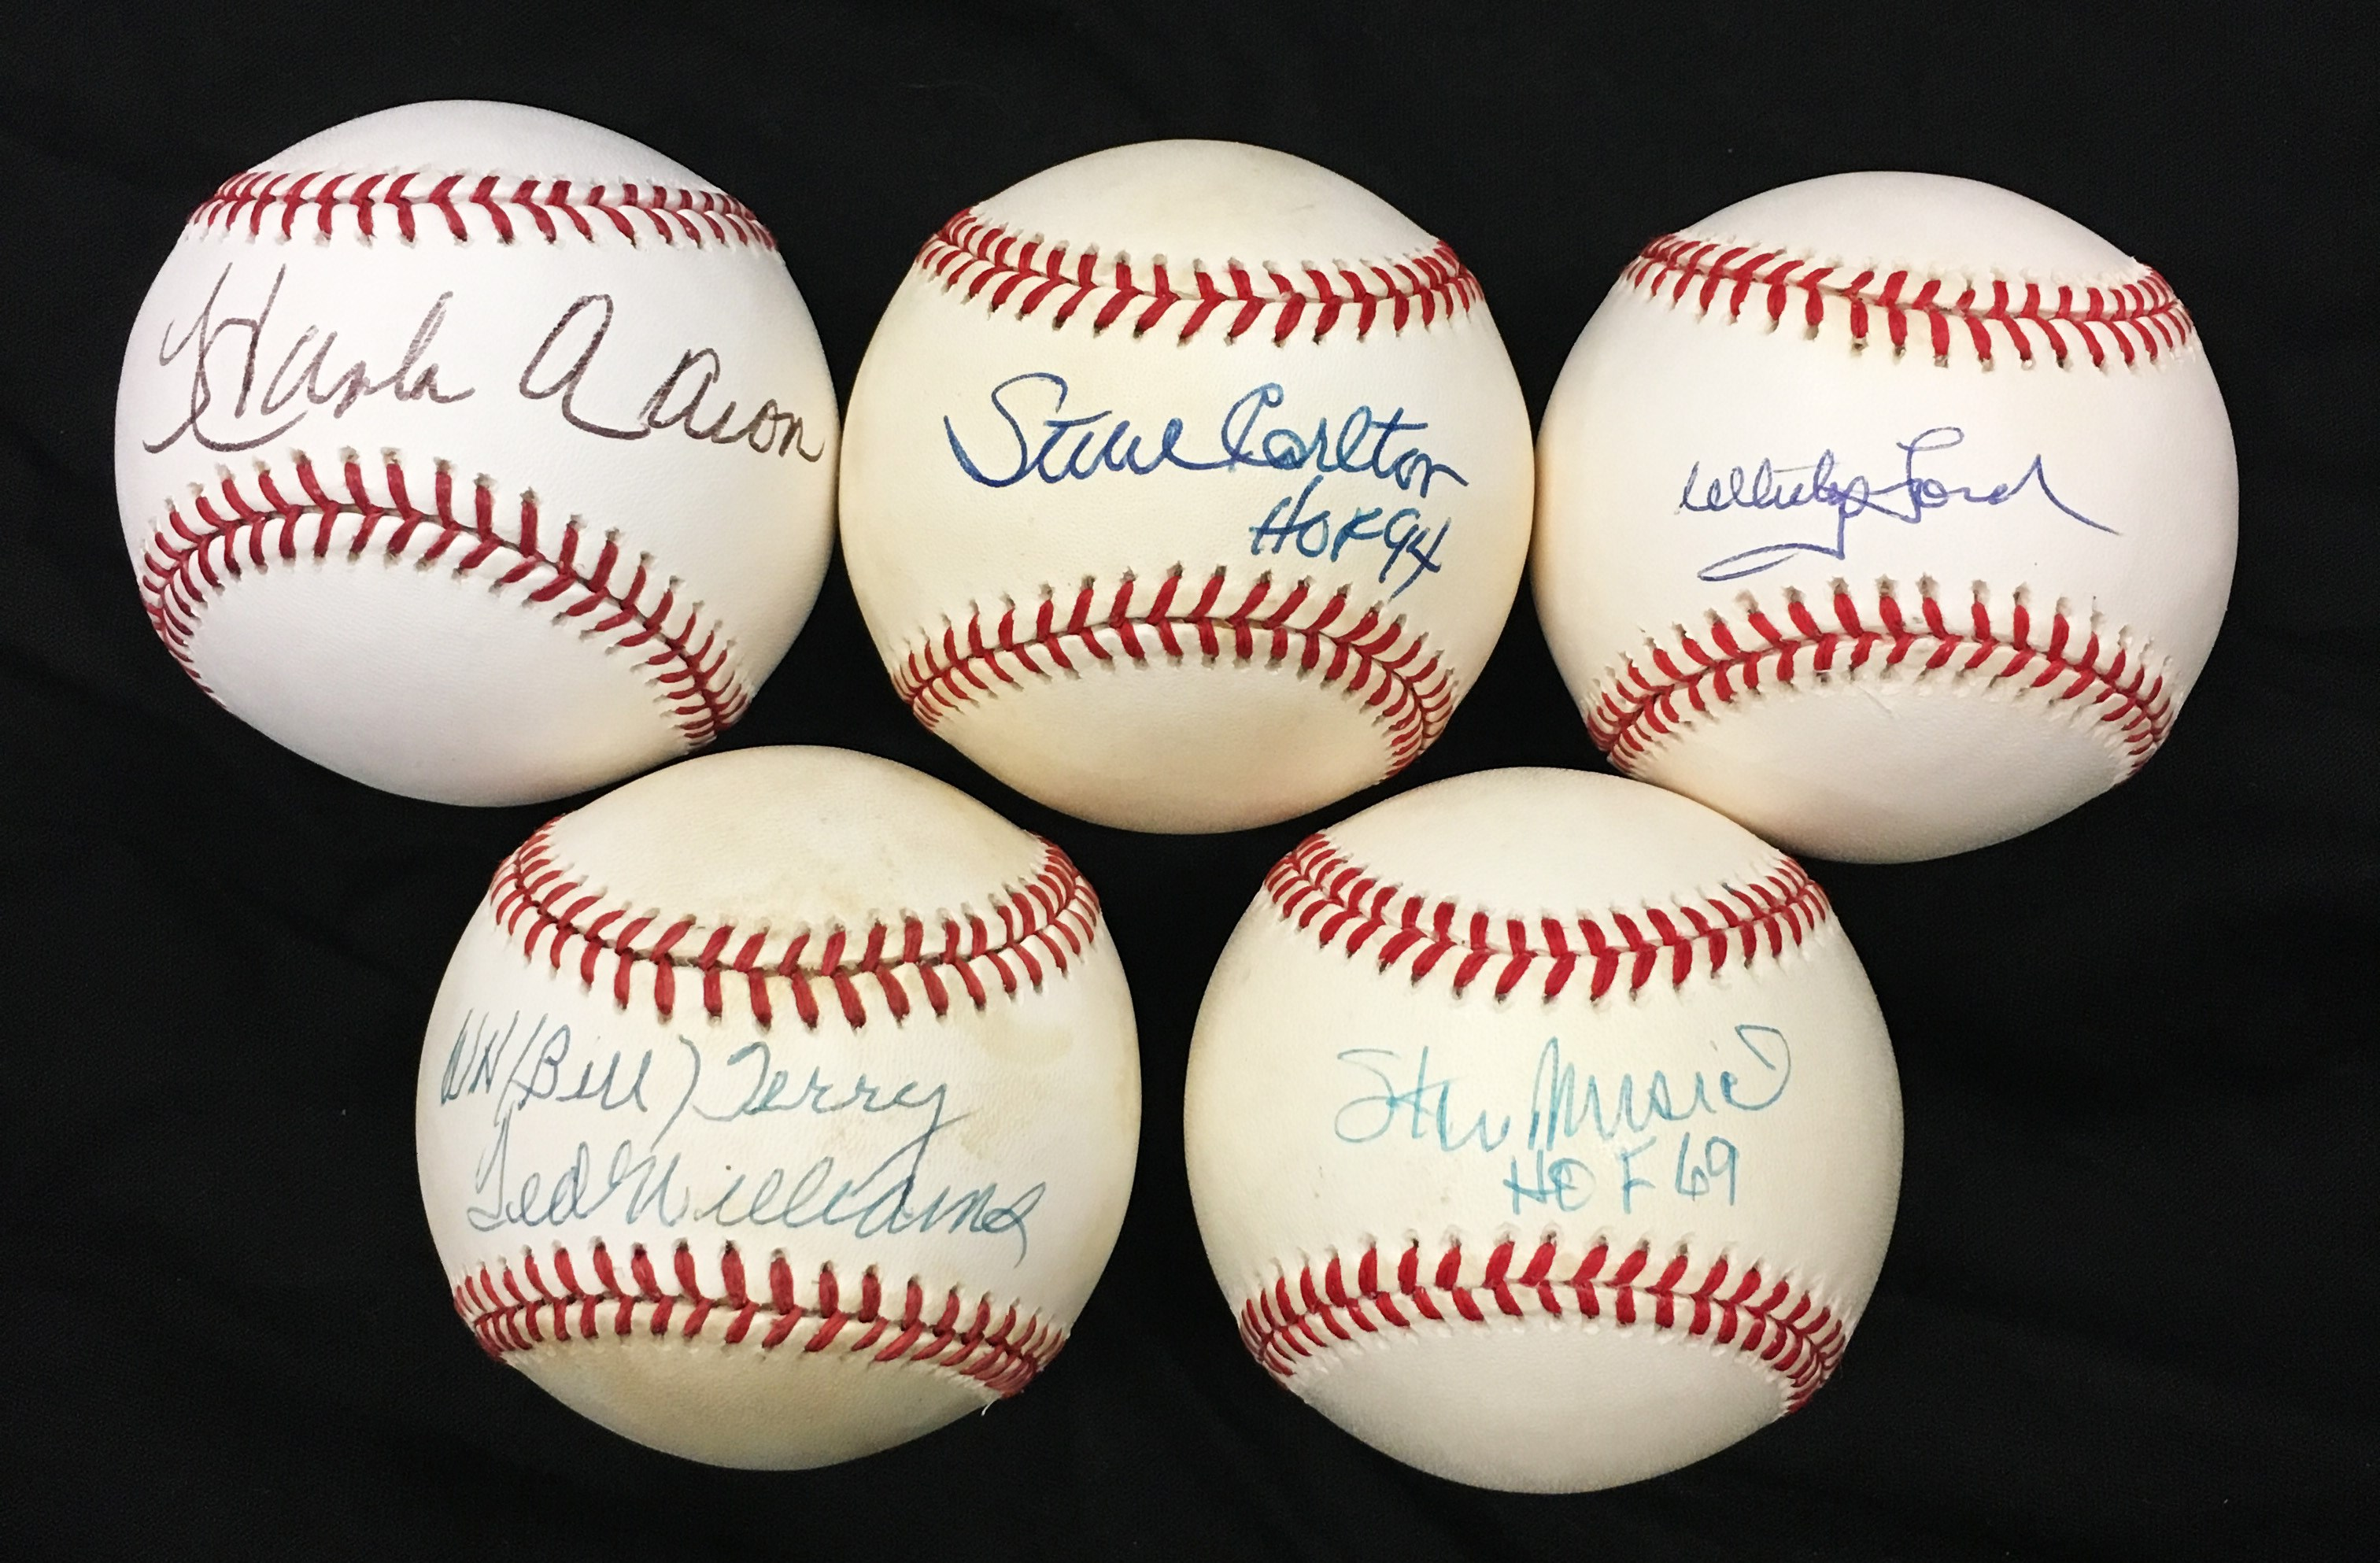 Baseball Autographs - Monthly 02-18